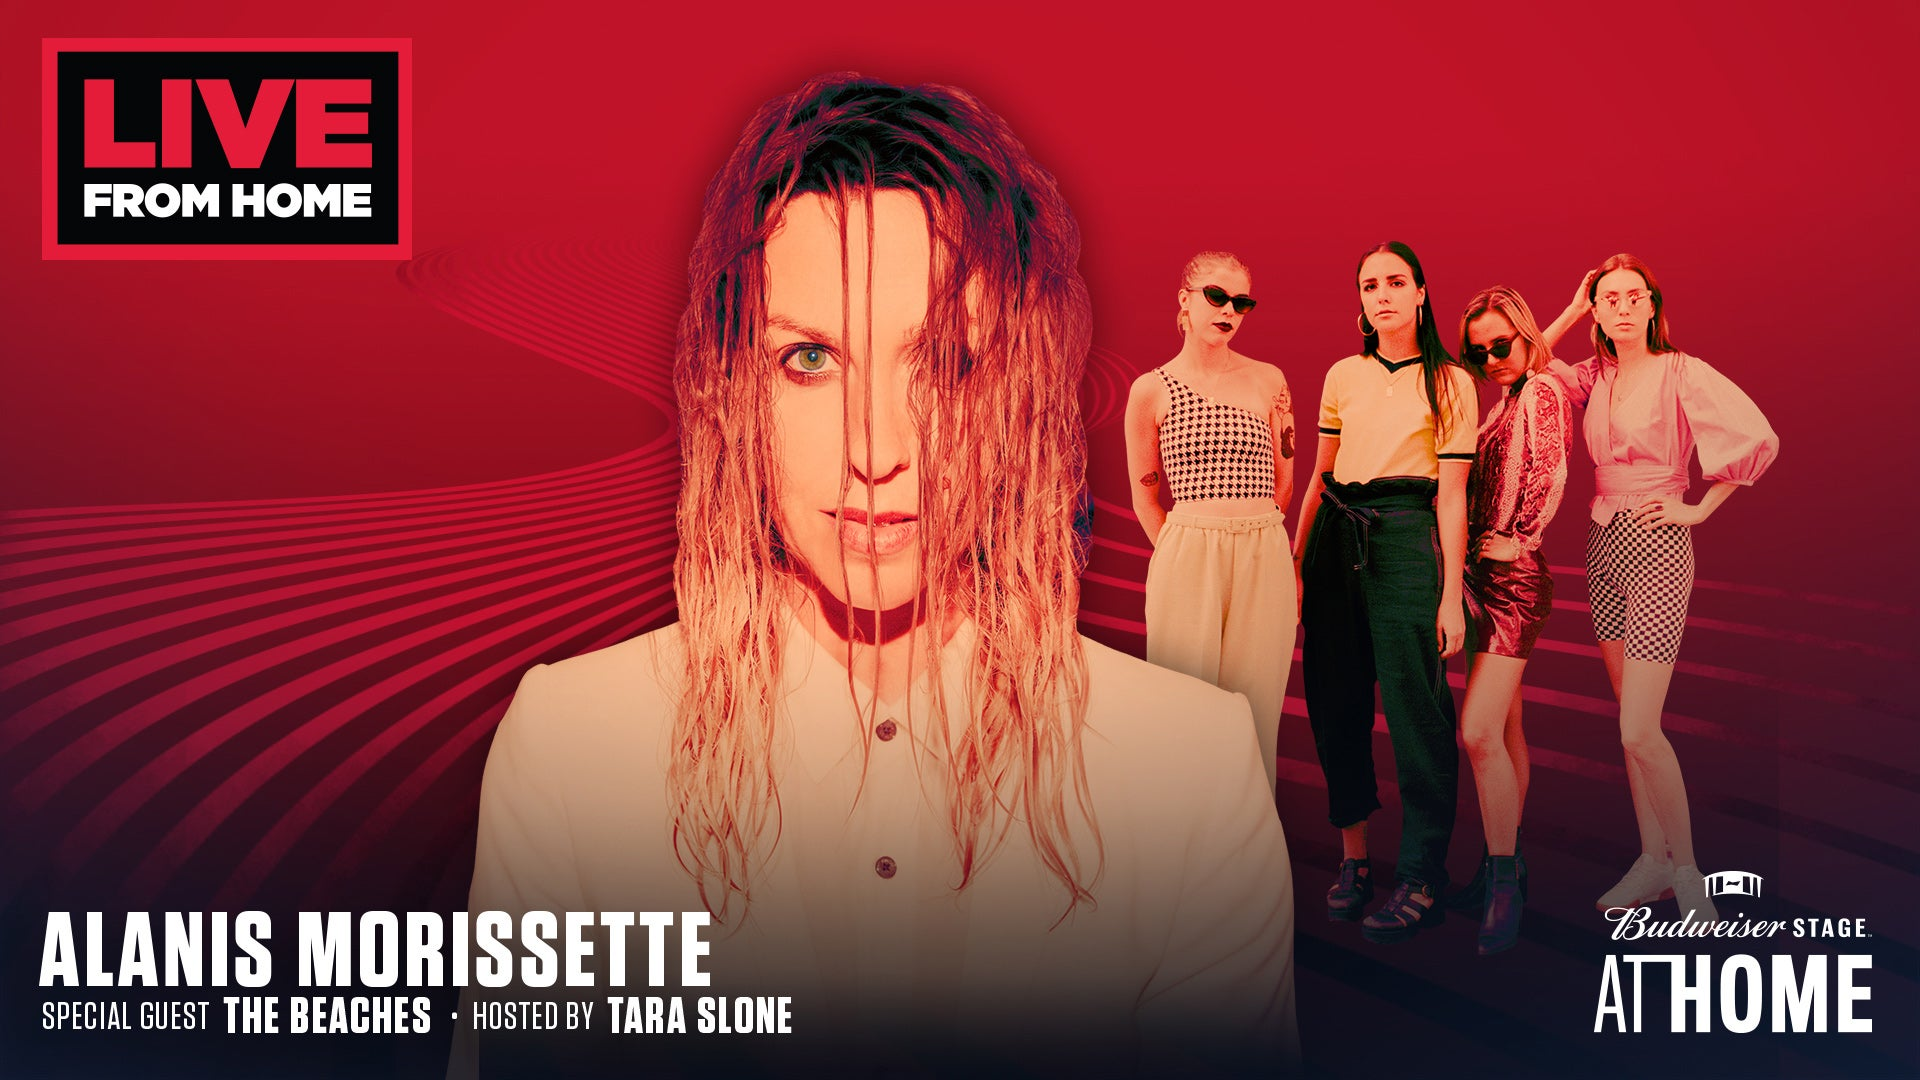 Budweiser Stage At Home: Alanis Morissette and The Beaches